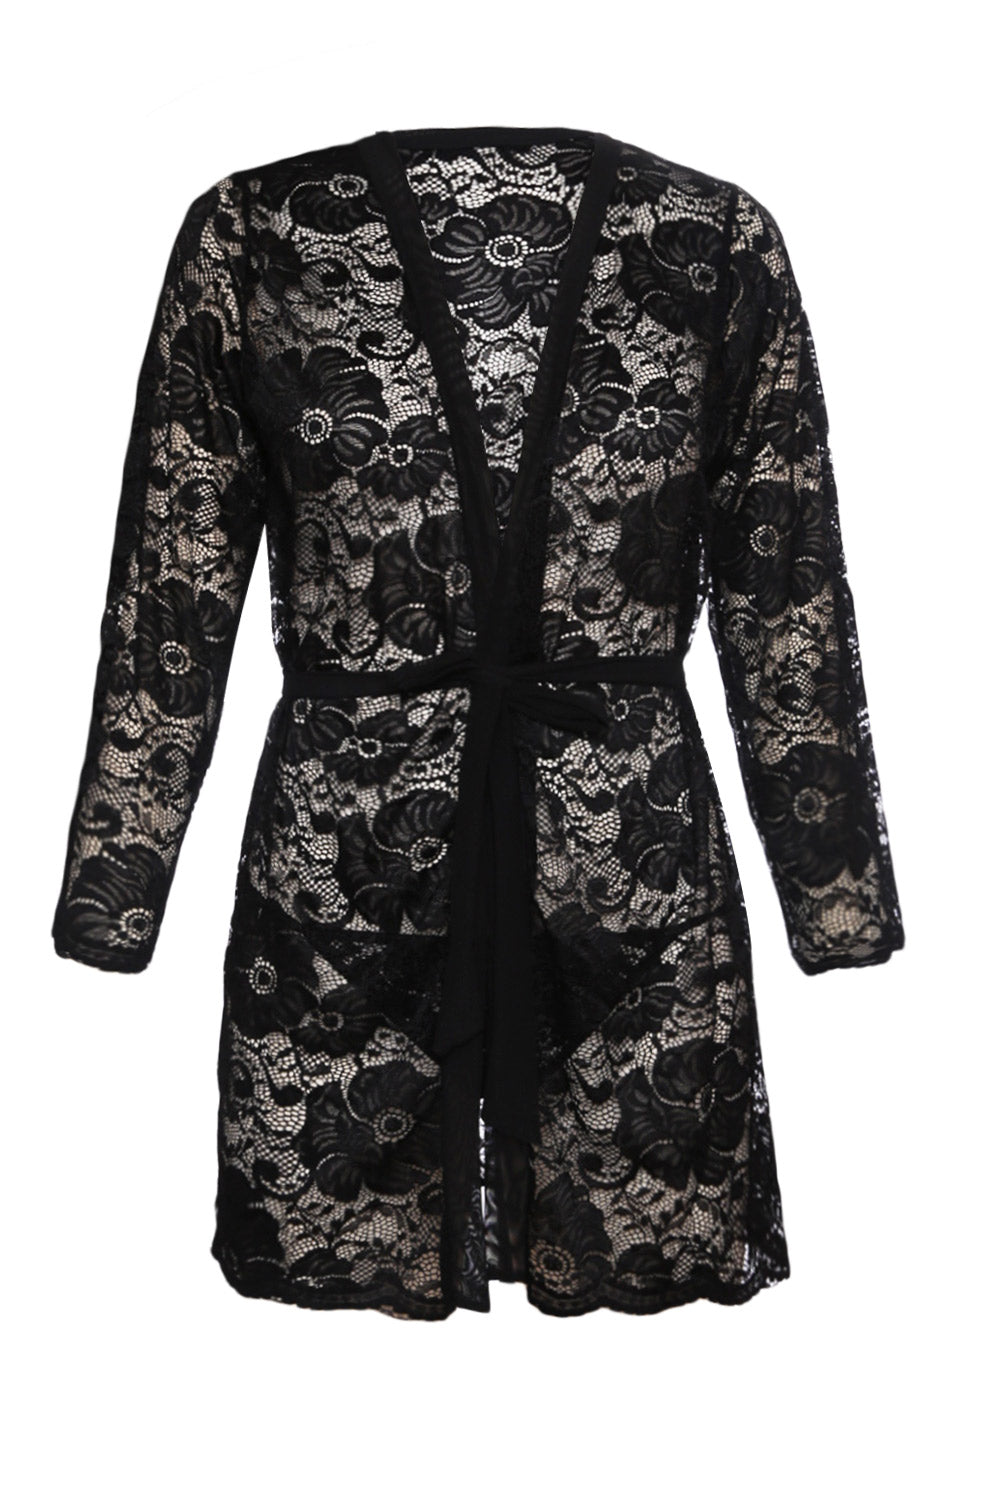 Playful and Elegant Her Fashion Black Luxurious Lace Robe